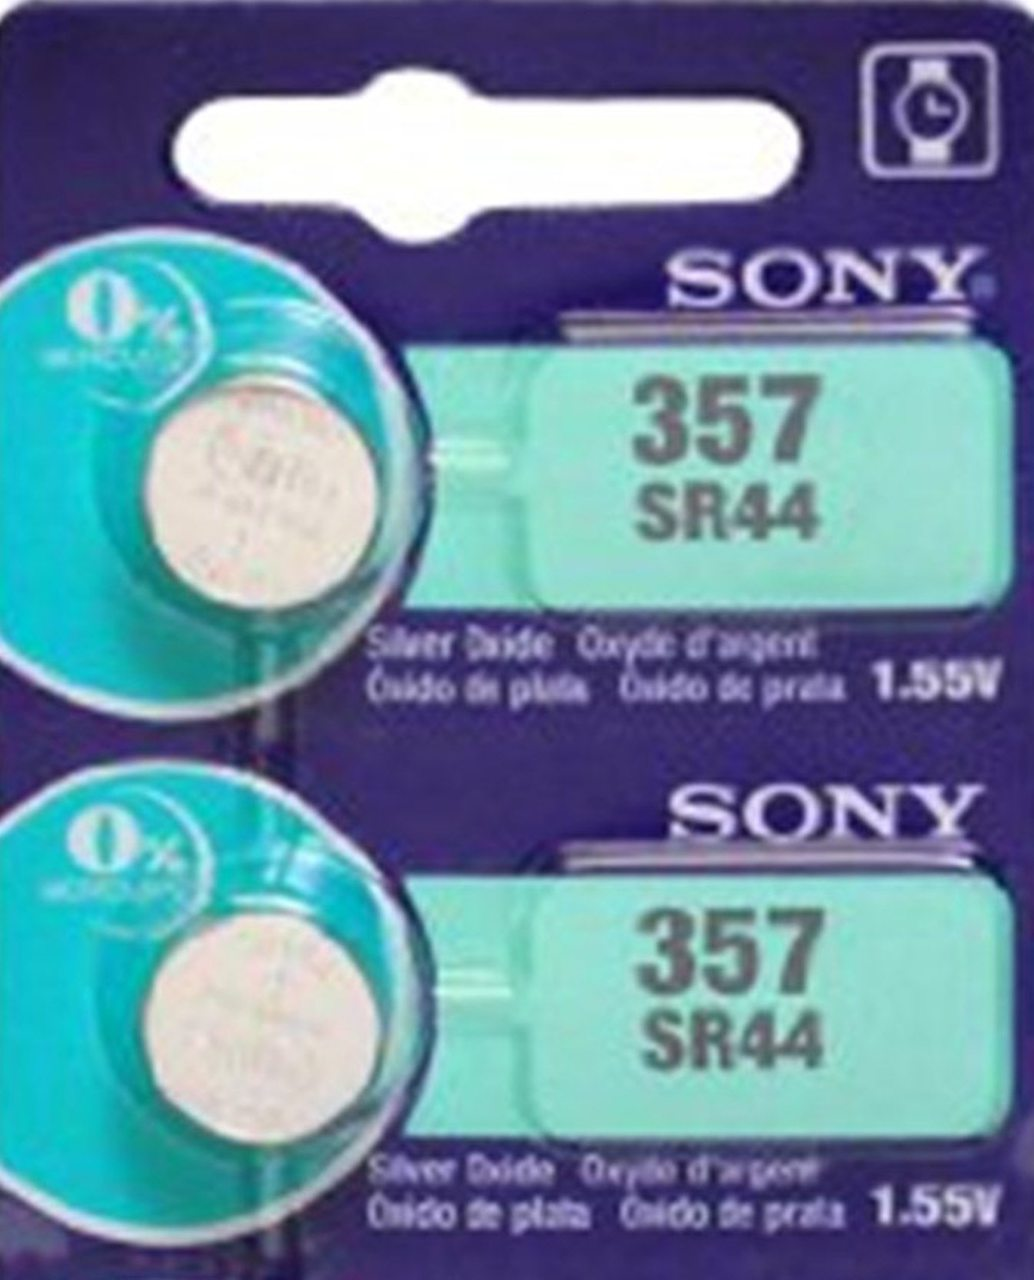 Sony 357/303 - SR44 Silver Oxide Button Battery 1.55V - 2 Pack + FREE SHIPPING!